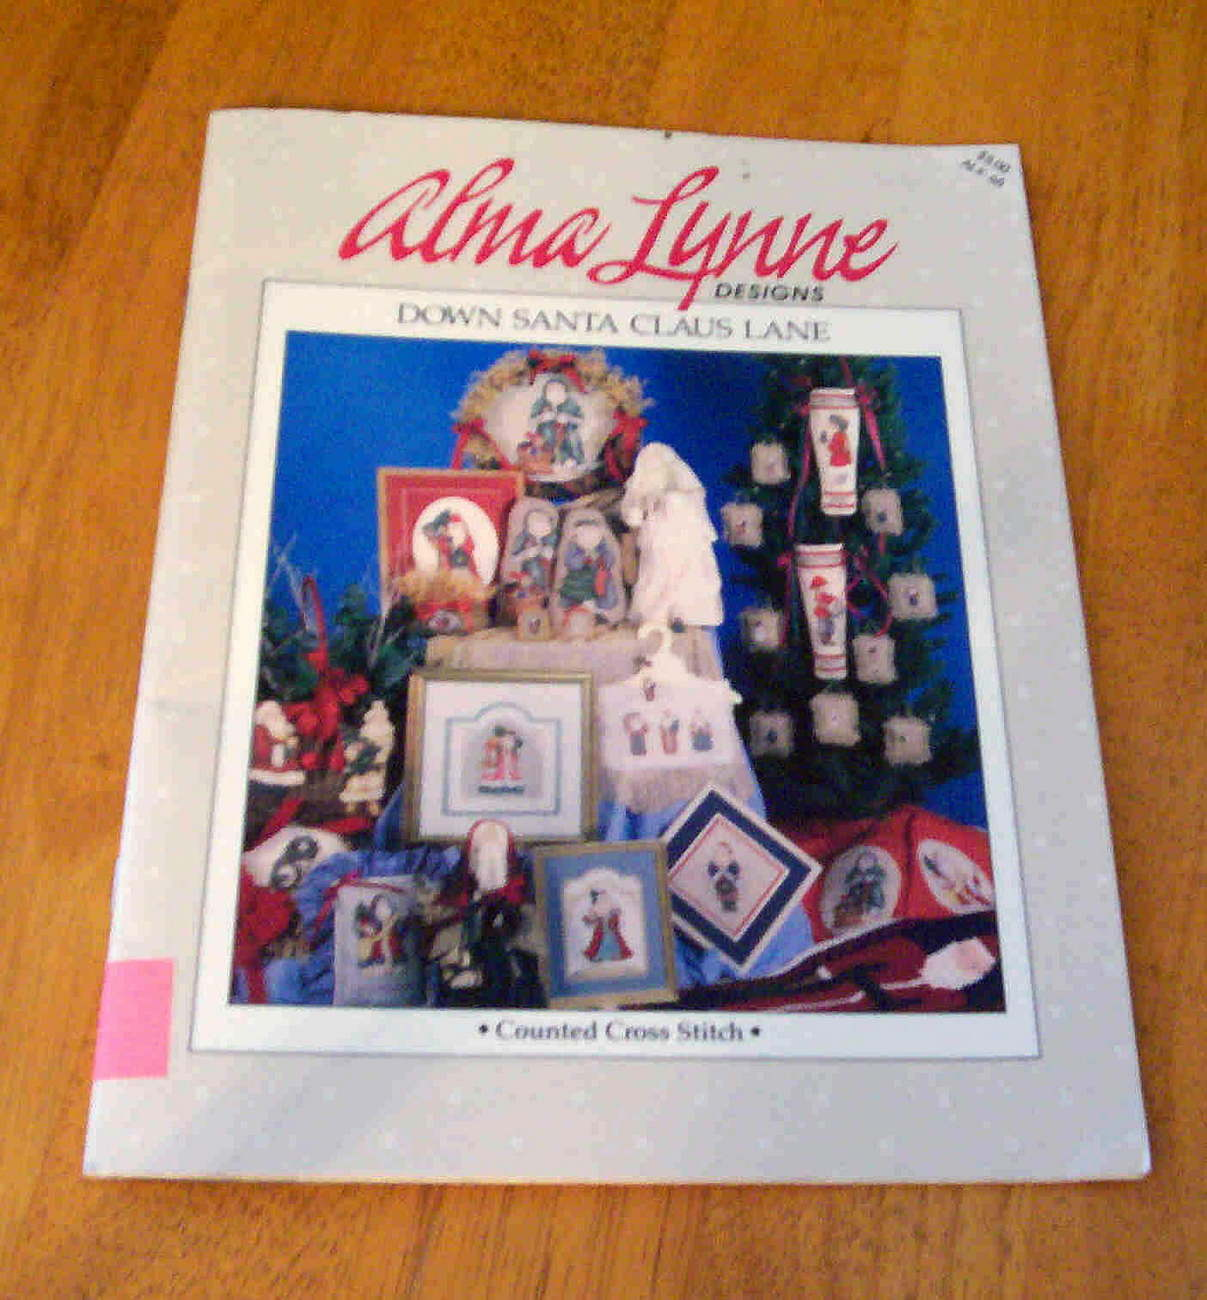 Down Santa Claus Lane Cross Stitch, Alma Lynne